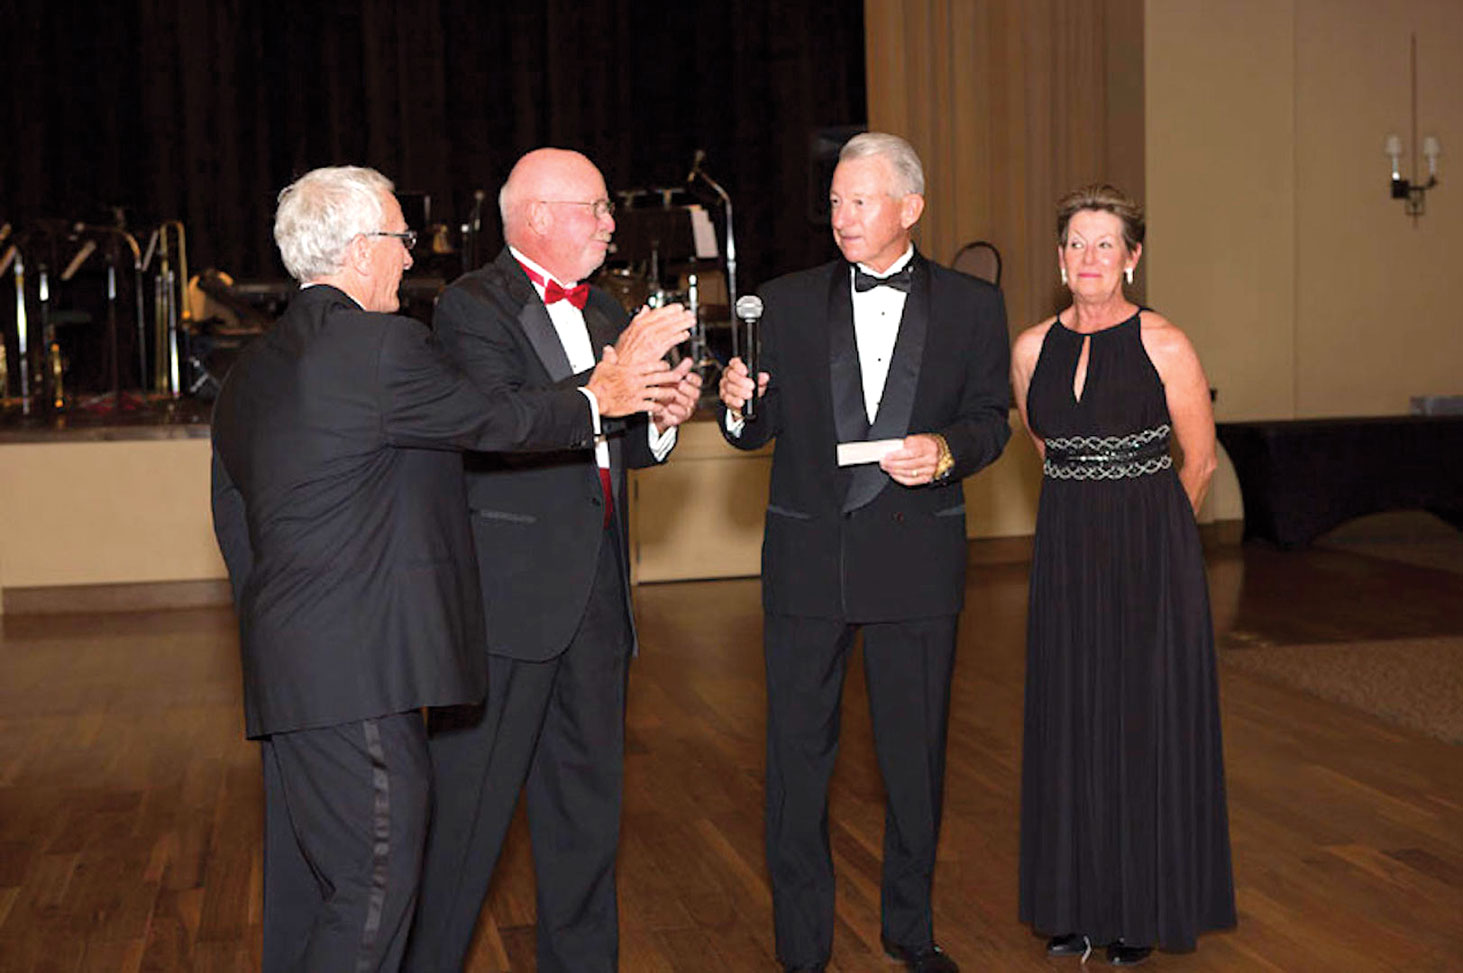 Ballroom Dance Club members: Tom Sullivan, Phil Geddes, Robert Lewis and Justine Lewis; photo by Ken Haley